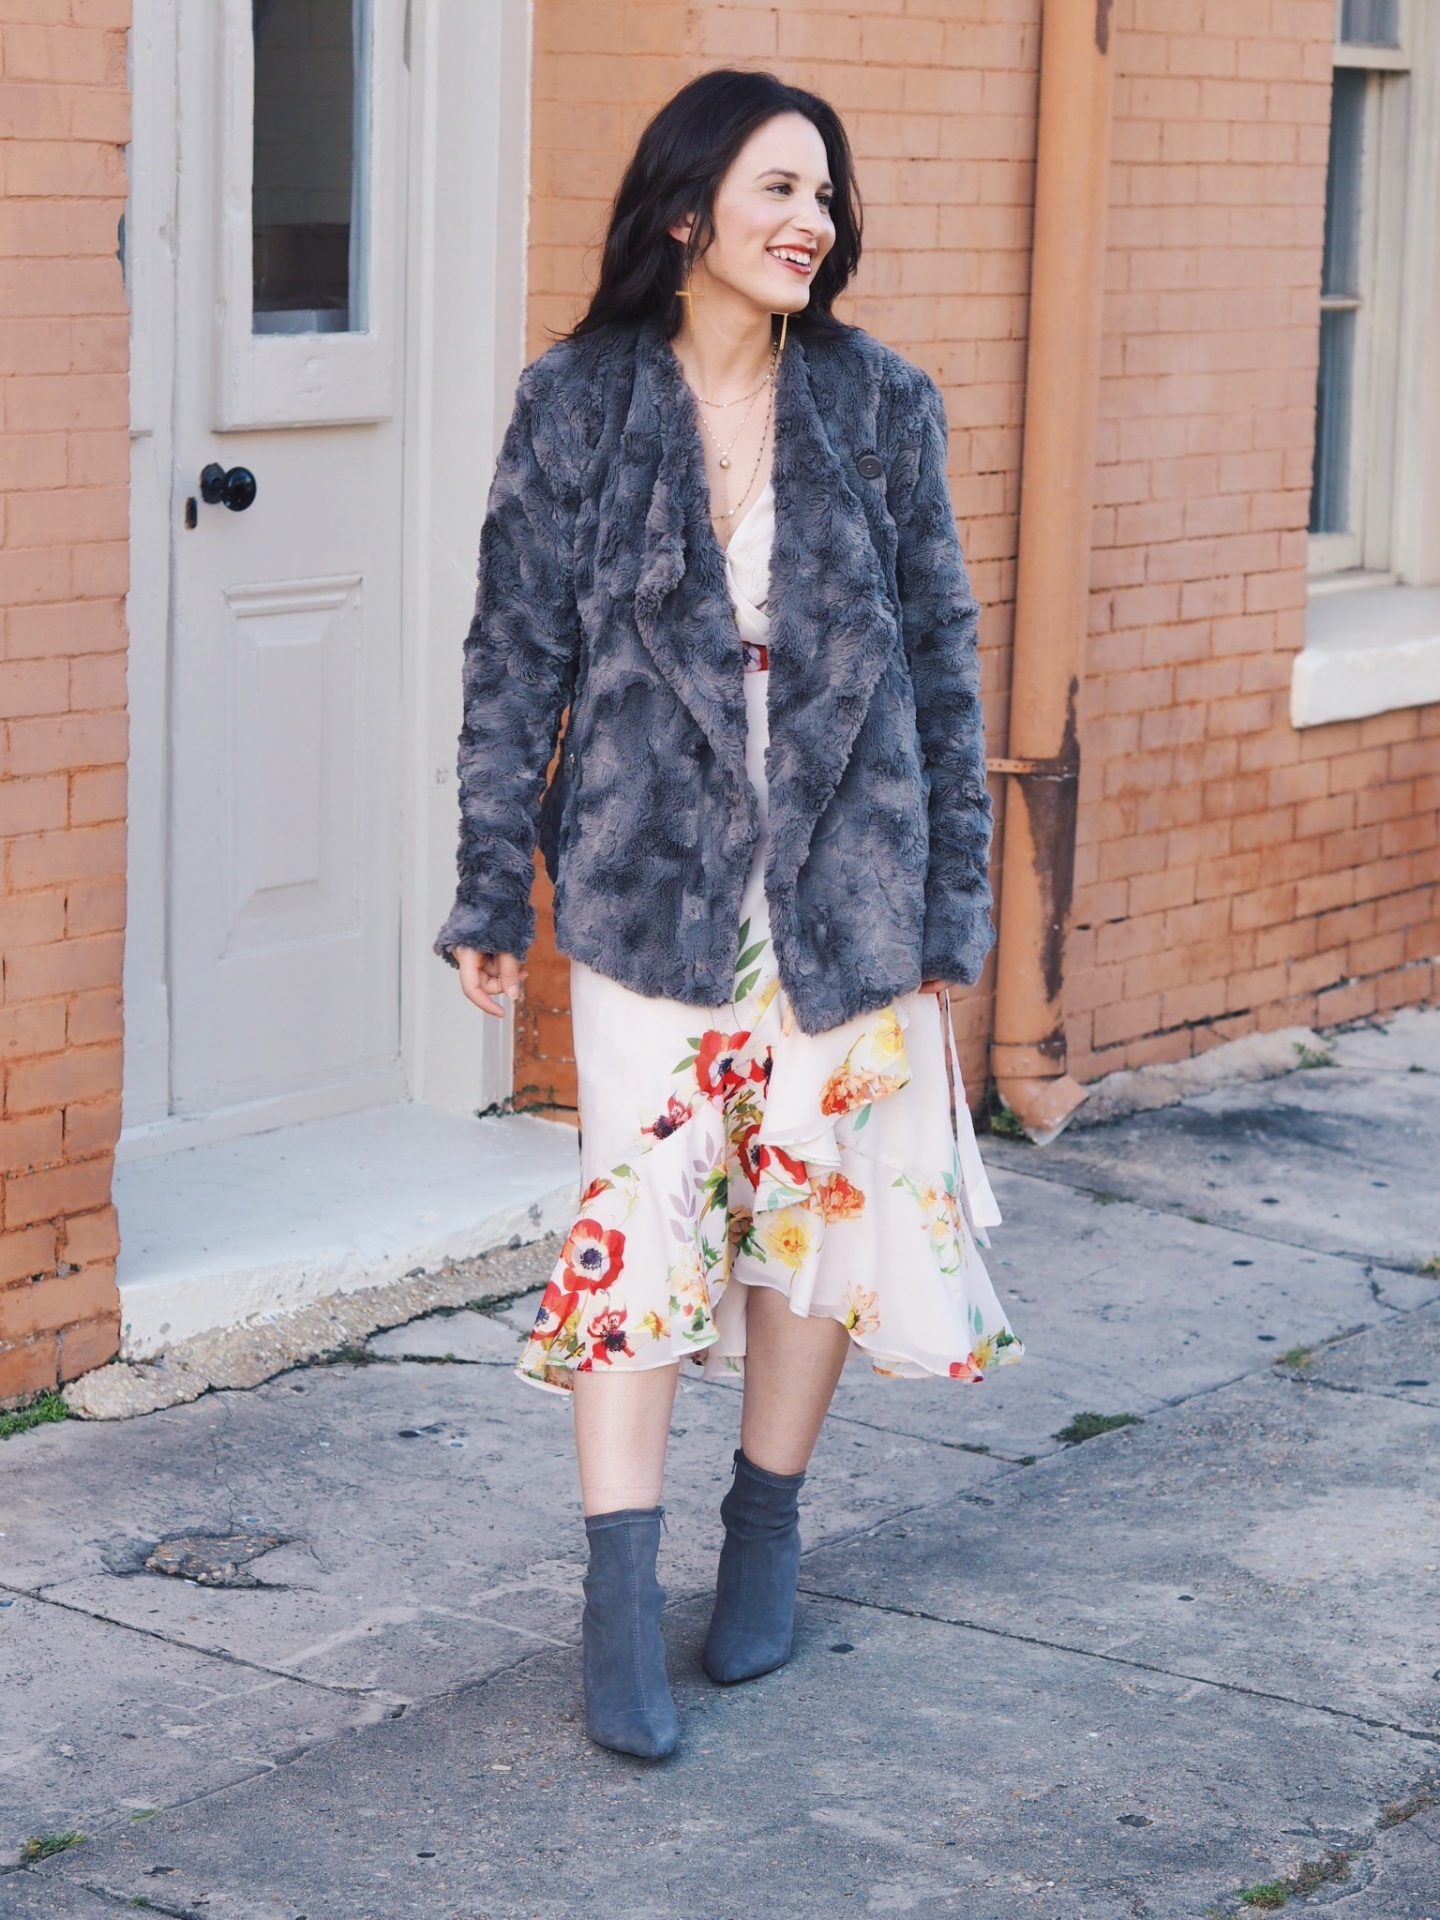 faux fir. floral dress. fall dress. fall style. transition style. one dress. sock boots. mom. mom style. natural. strap heels